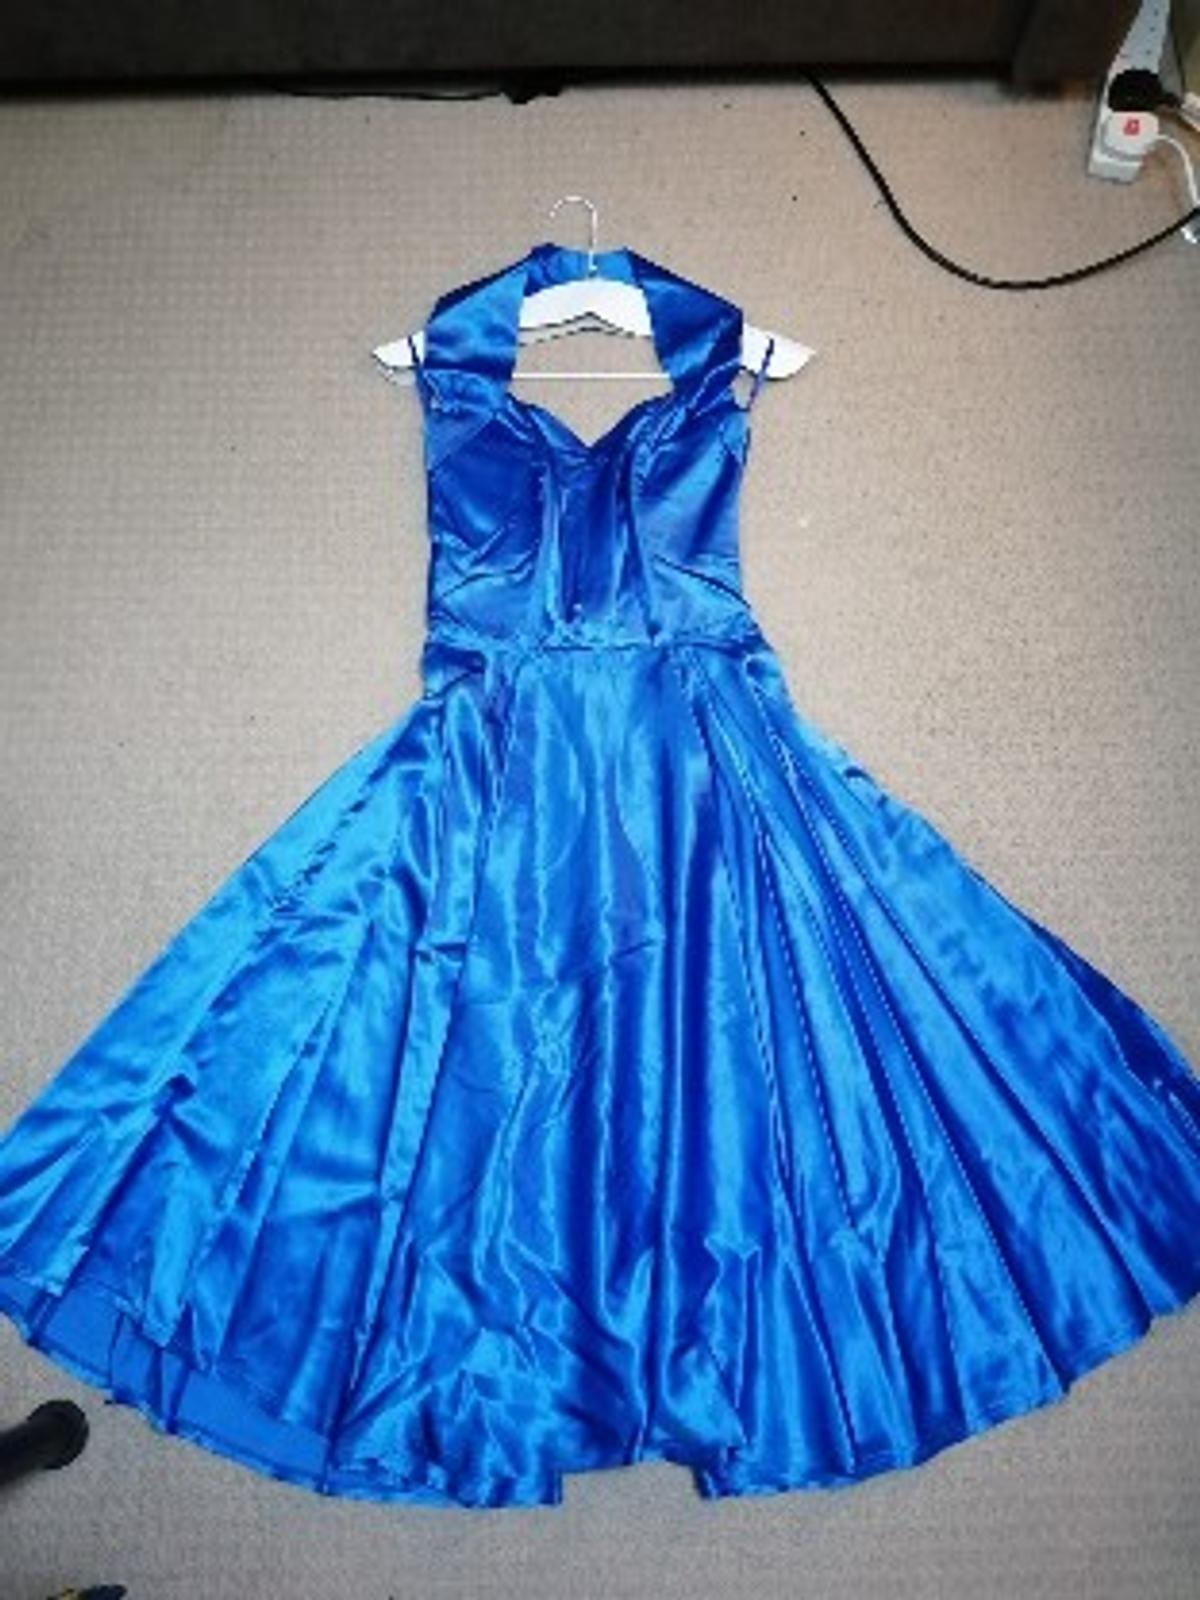 Royal blue satin halterneck dress with full circle skirt from Vivien of Holloway. Vintage 1950s style. Worn twice and dry cleaned. Straps have been adjusted but the seam can be unpicked. Perfect for weddings. Comes with full circle petticoat.